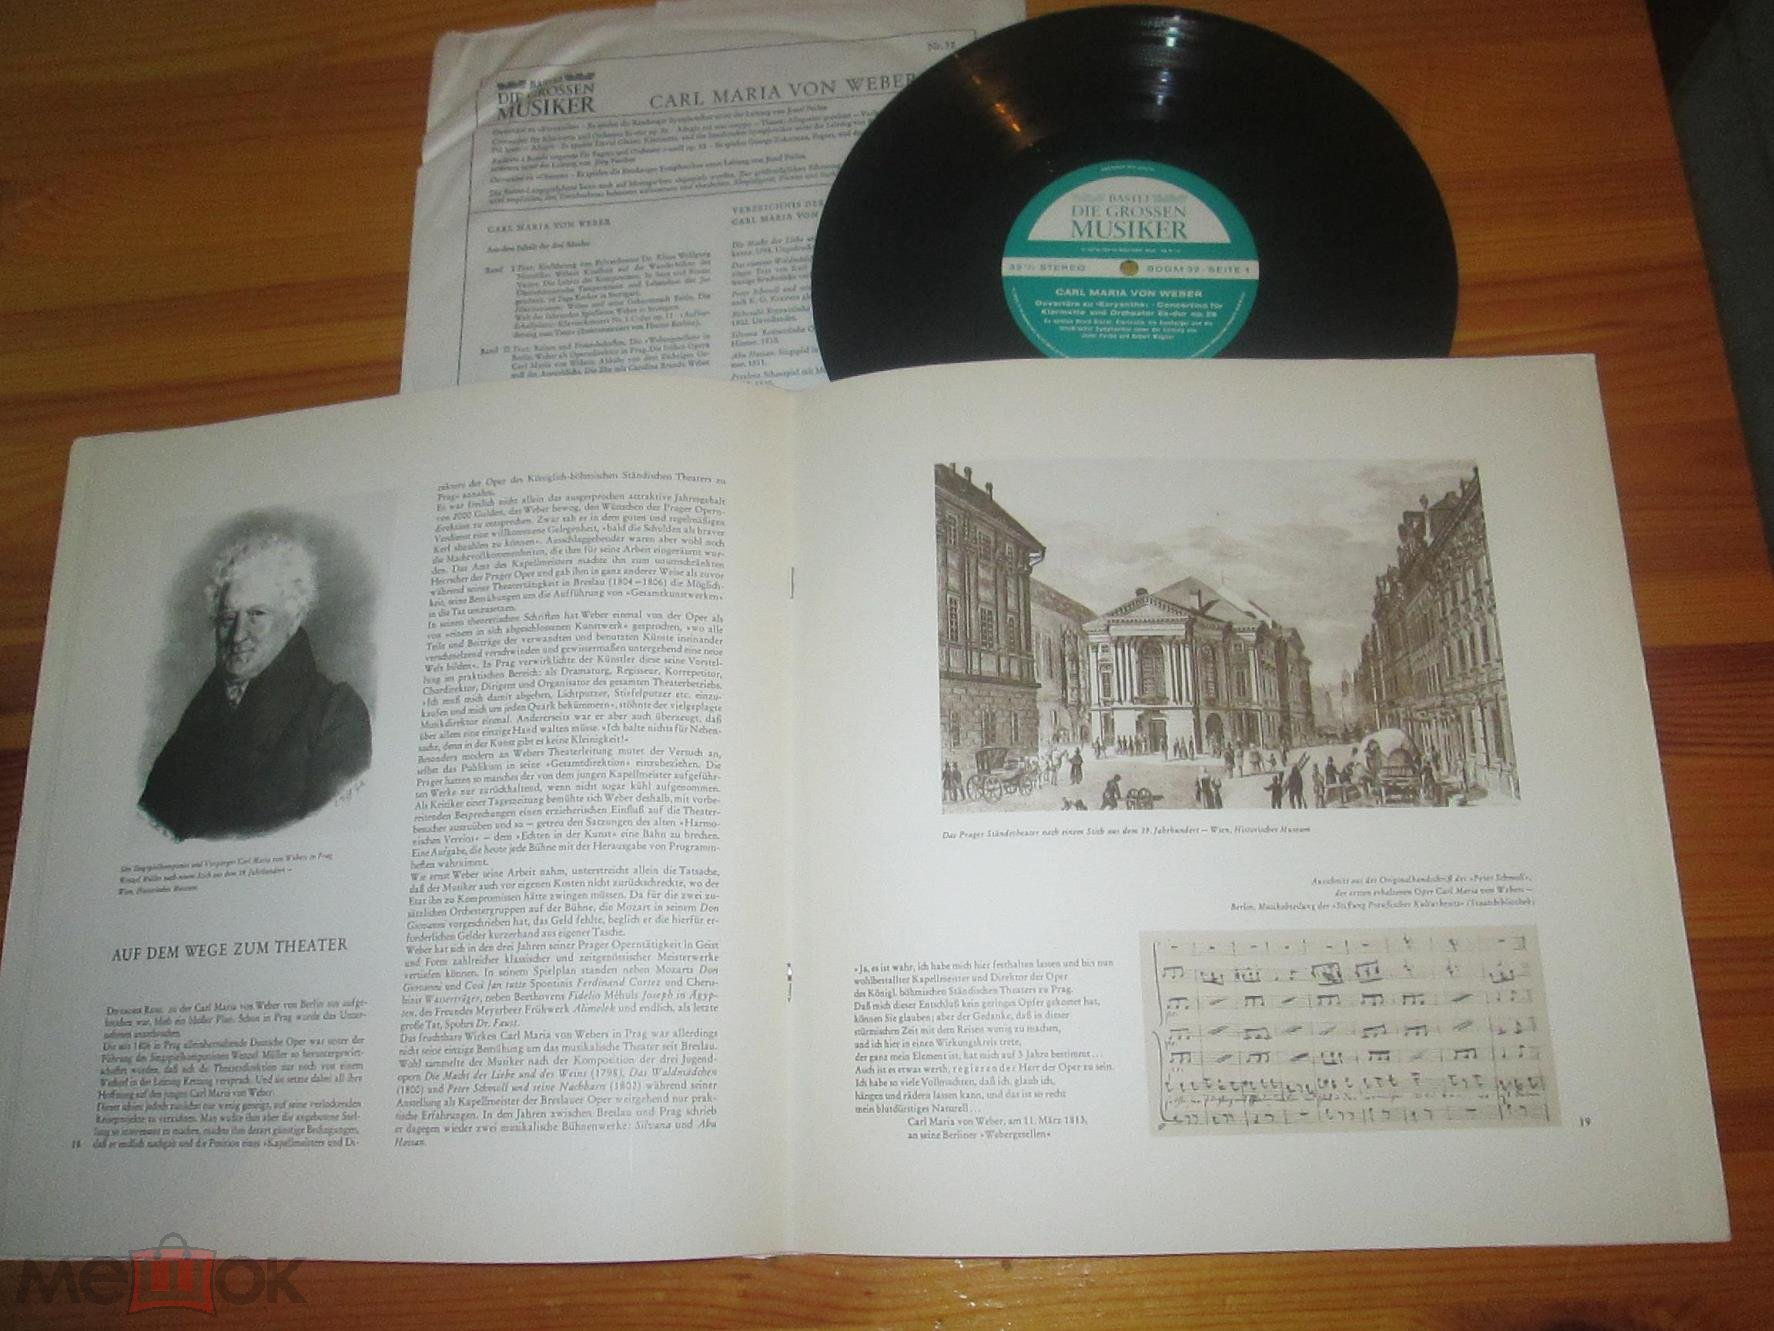 "♫ Carl Maria Von Weber ● In 3 Folgen · Band II ► 10"" LP BOOK ©℗ 1968 Germany (NM) ОЧ.РЕДКИЙ"